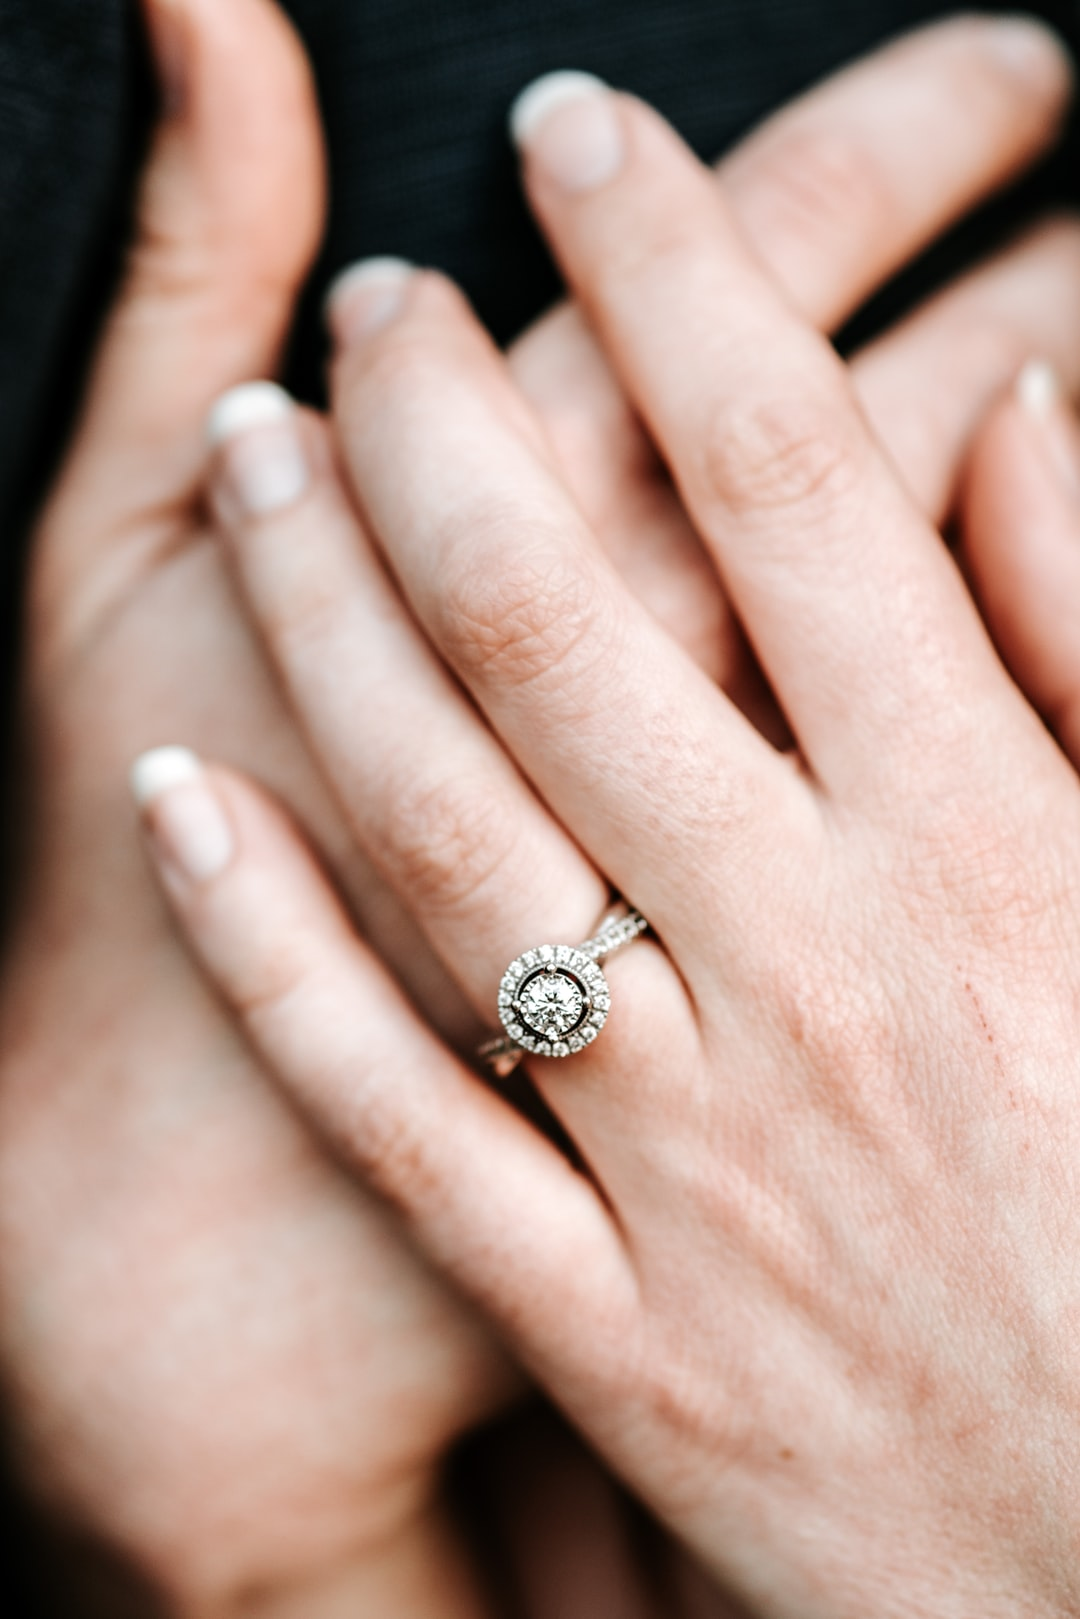 Buying an Engagement Ring: How to Pick the Perfect Bling